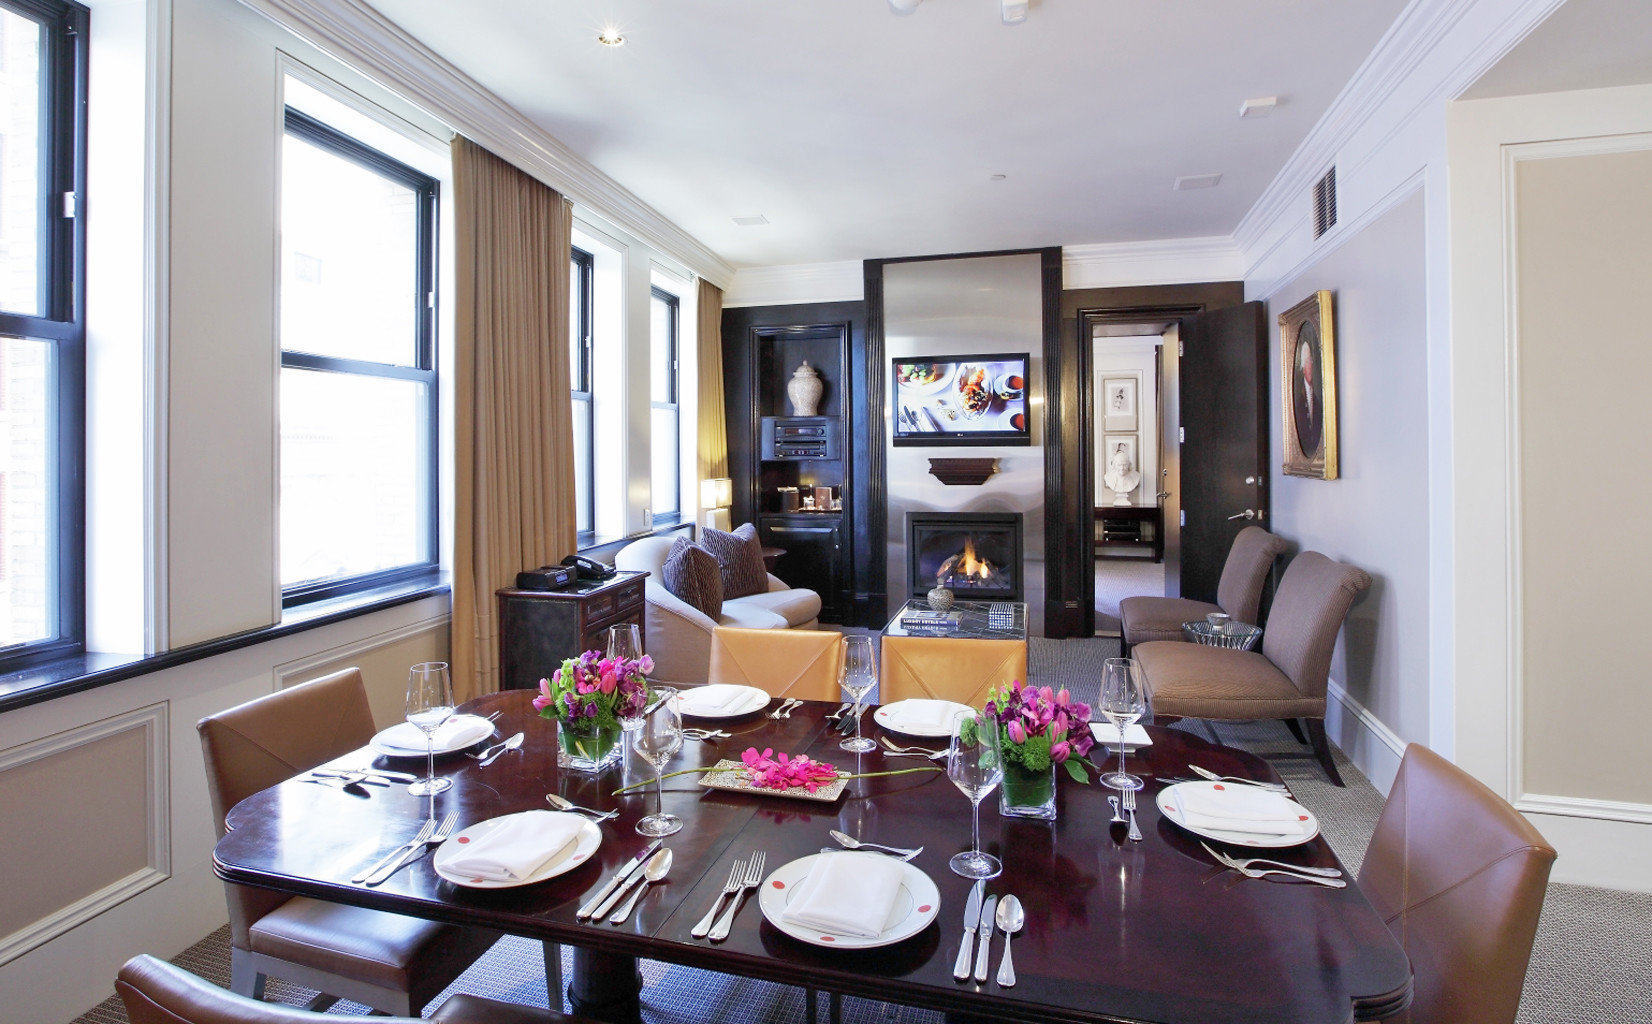 Business Dining Drink Eat Historic Lounge Luxury Modern Romantic Suite property living room condominium home mansion